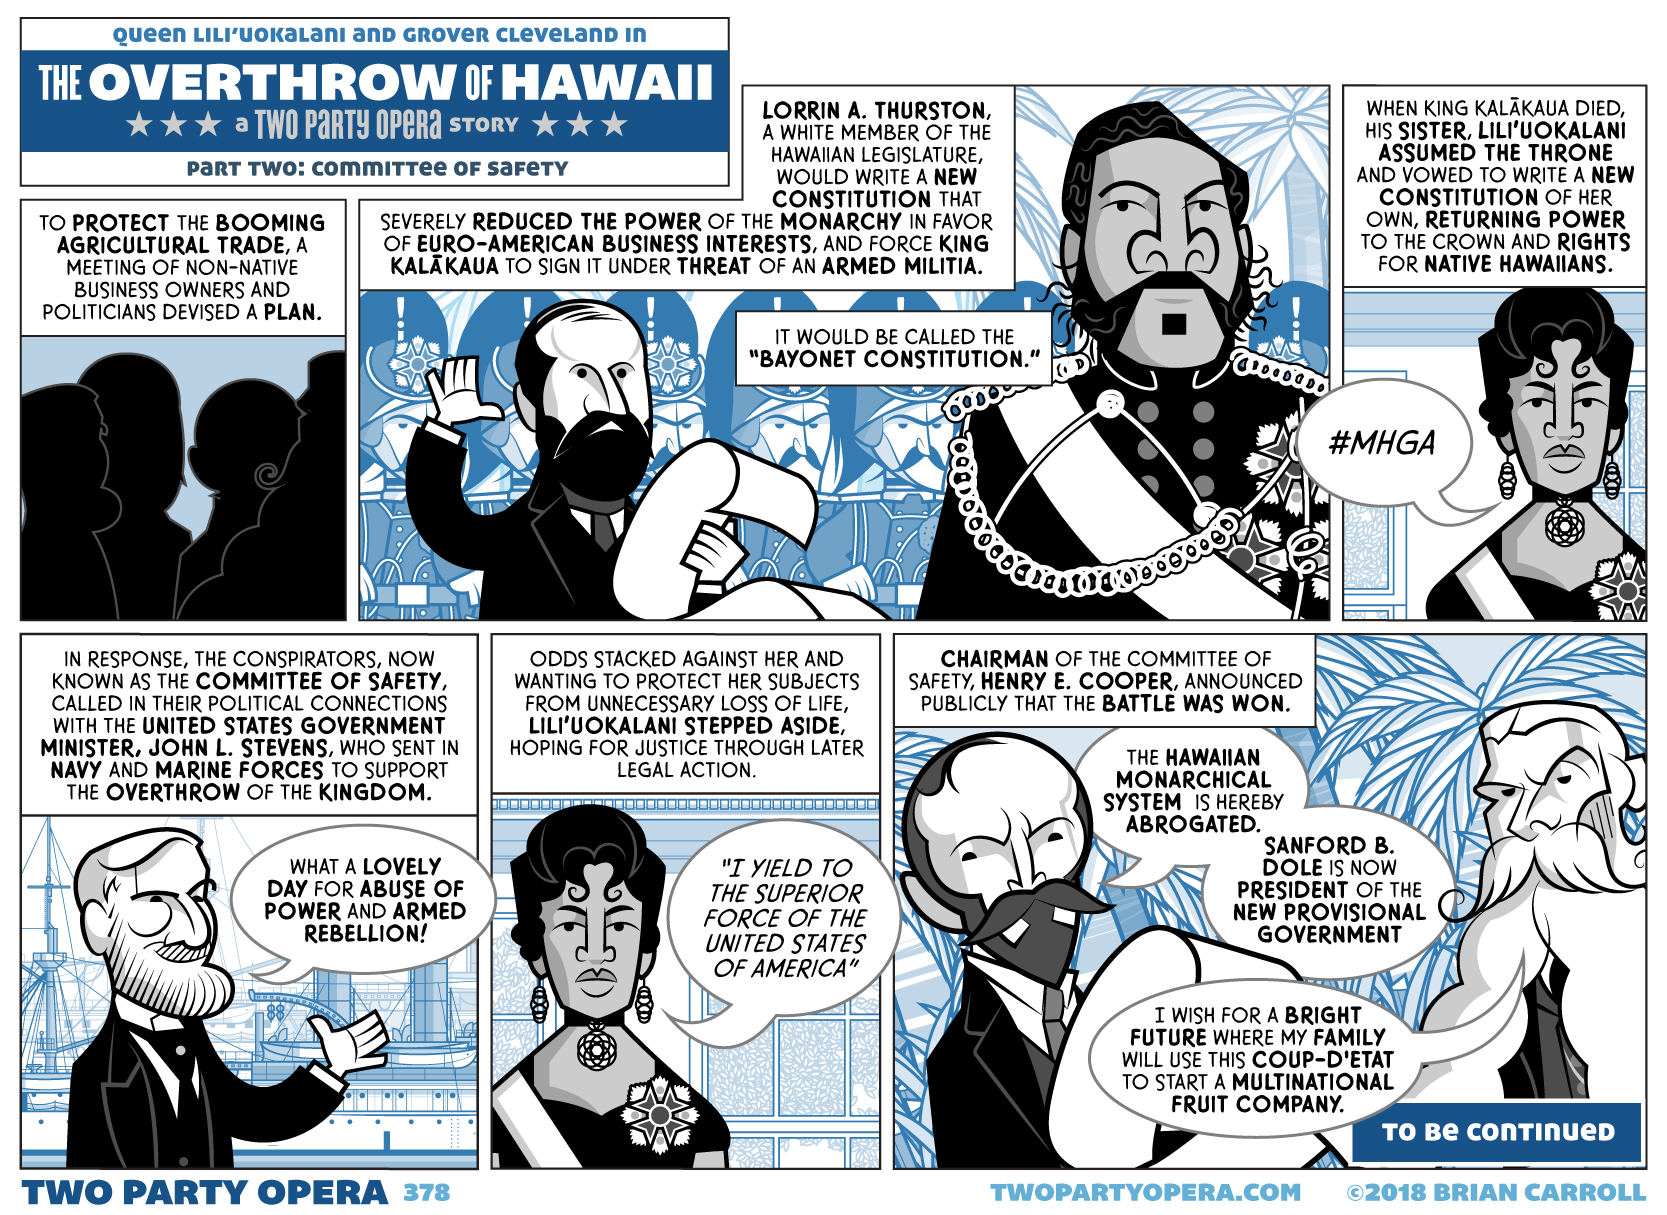 The Overthrow of Hawaii – Part Two: Committee of Safety